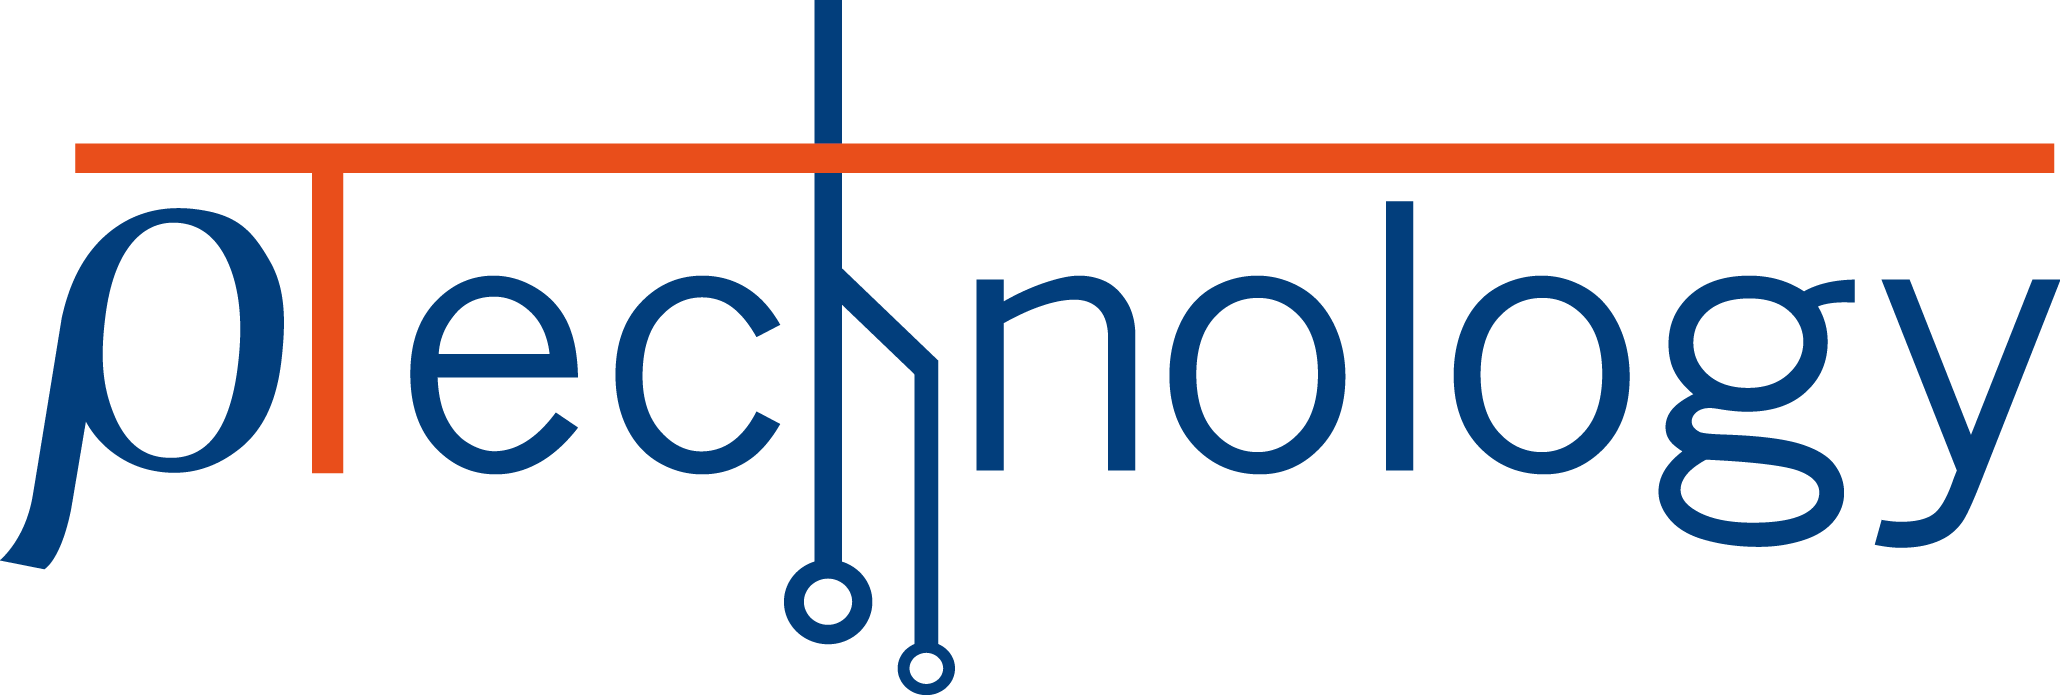 PTECHNOLOGY